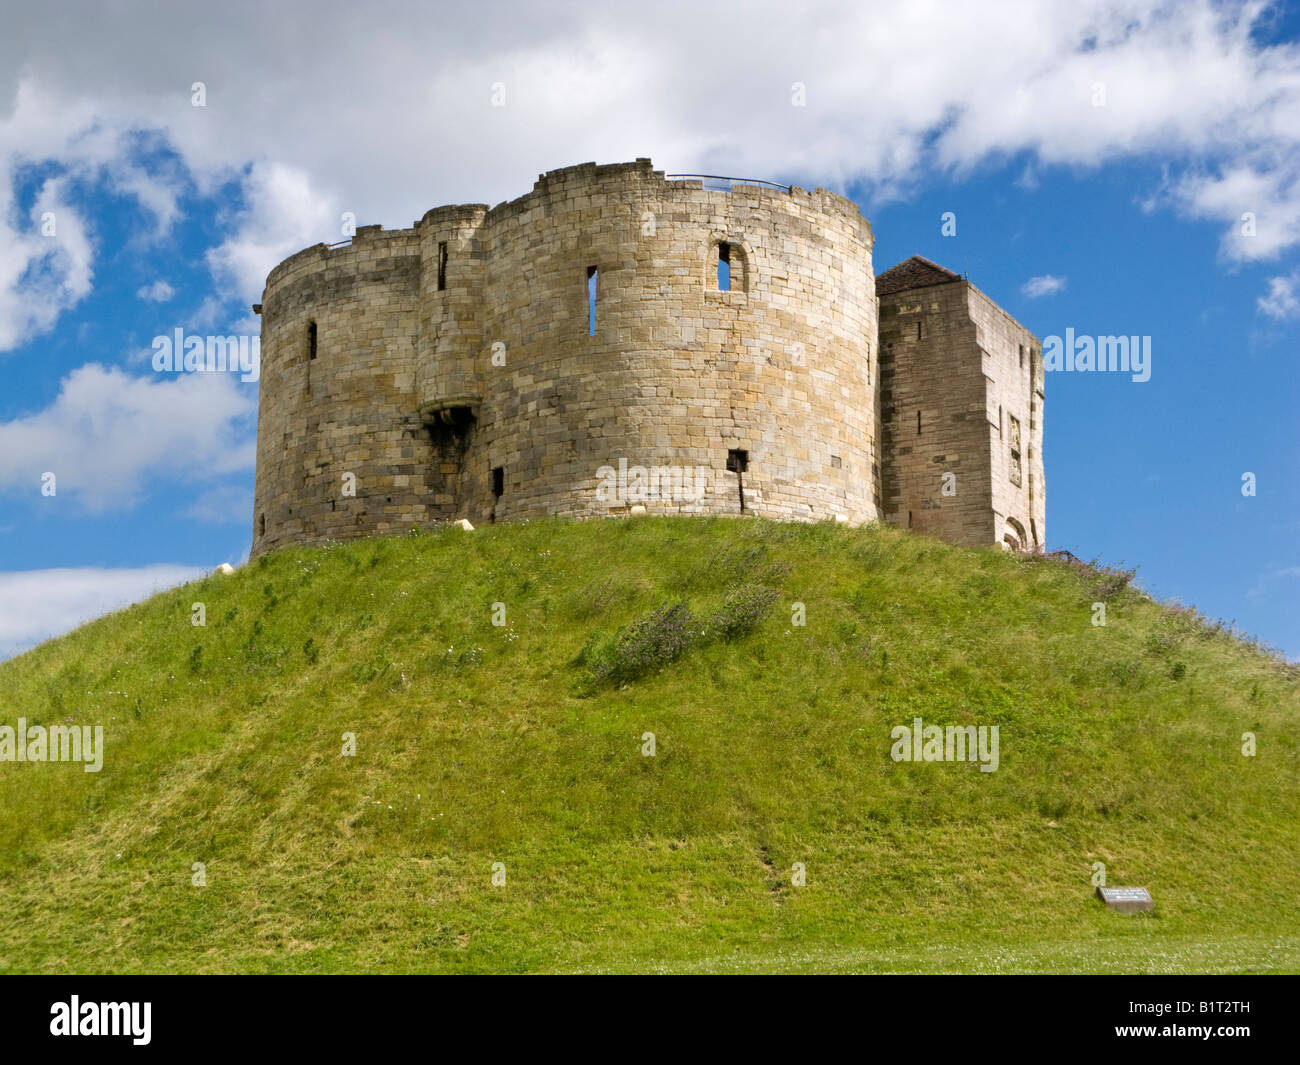 Cliffords Tower Château York England UK Photo Stock